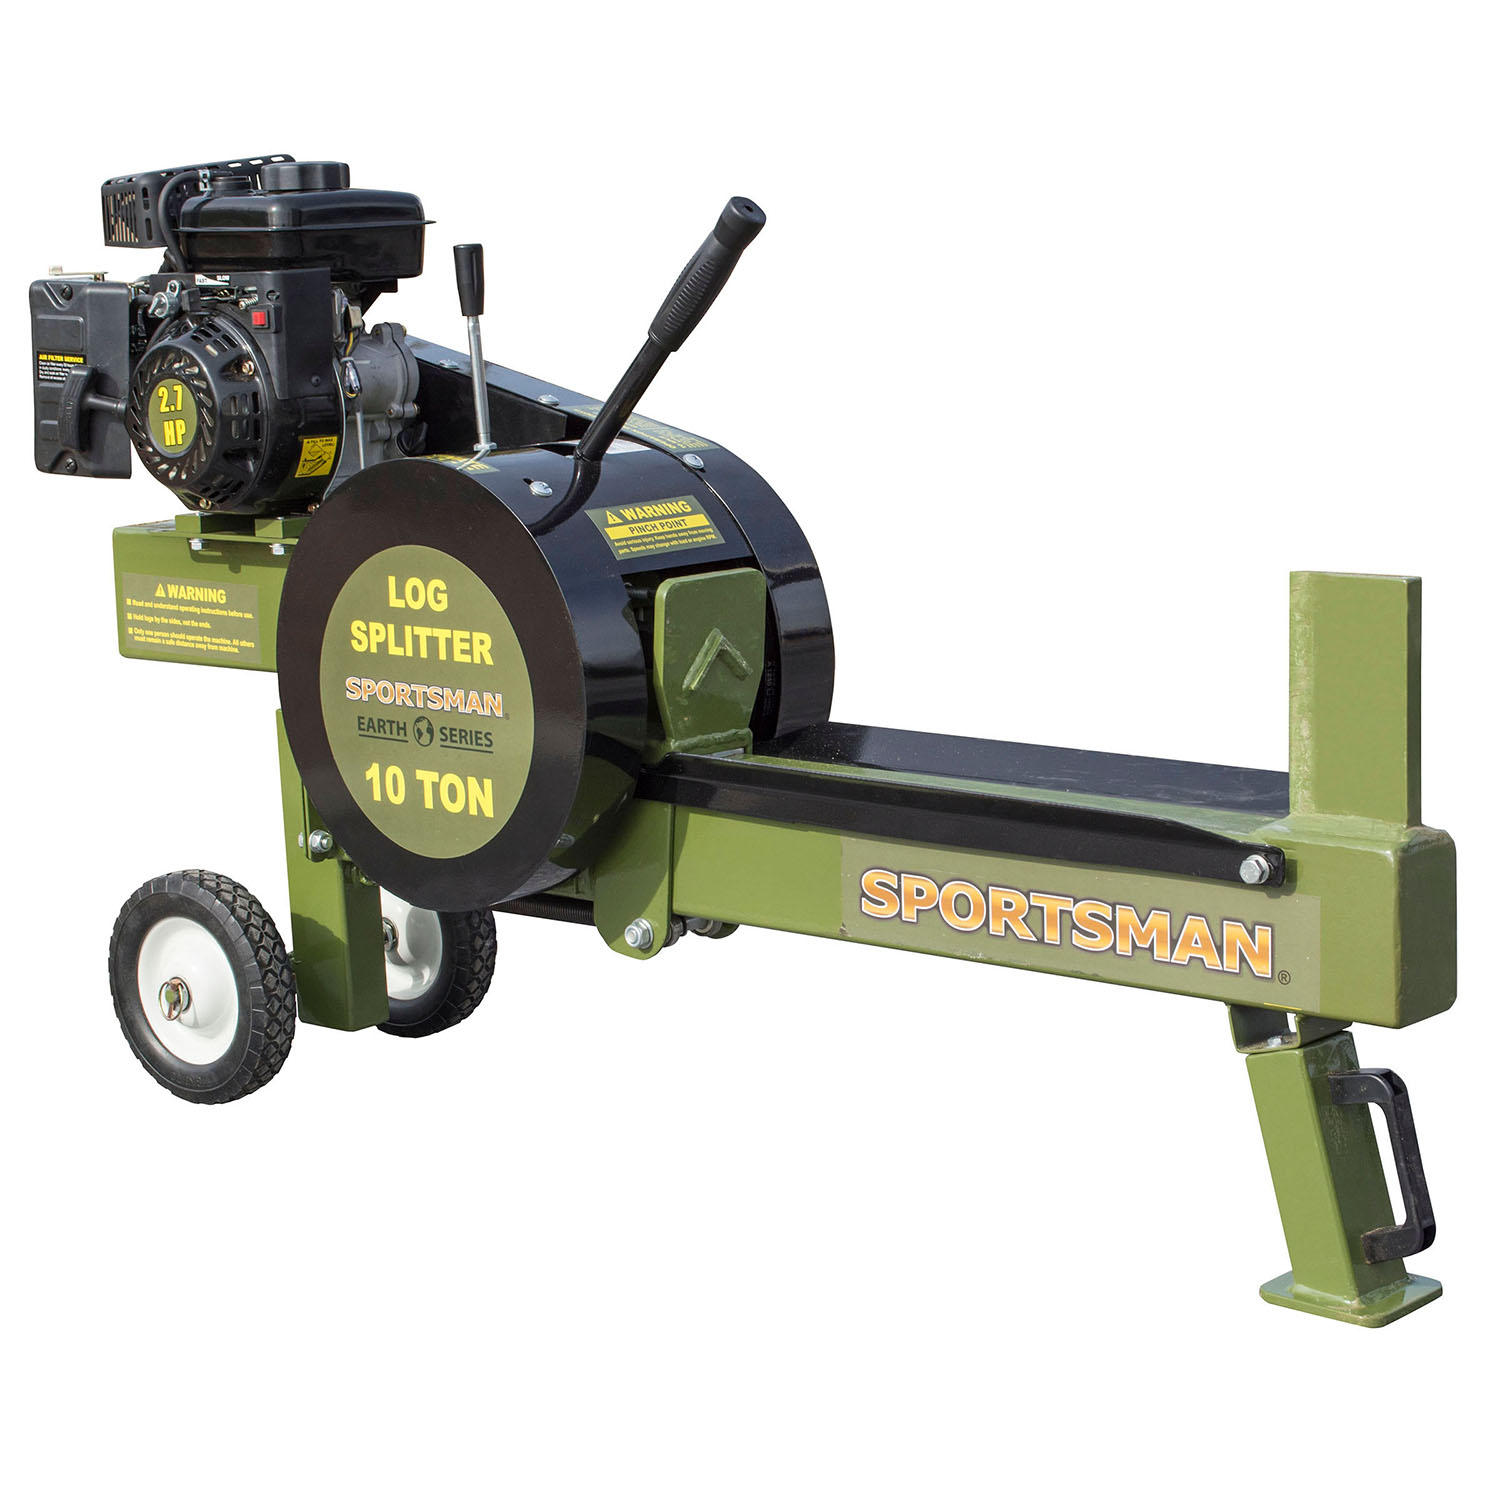 Sportsman Earth Series 10-Ton Gas-Powered Kinetic Log Spitter